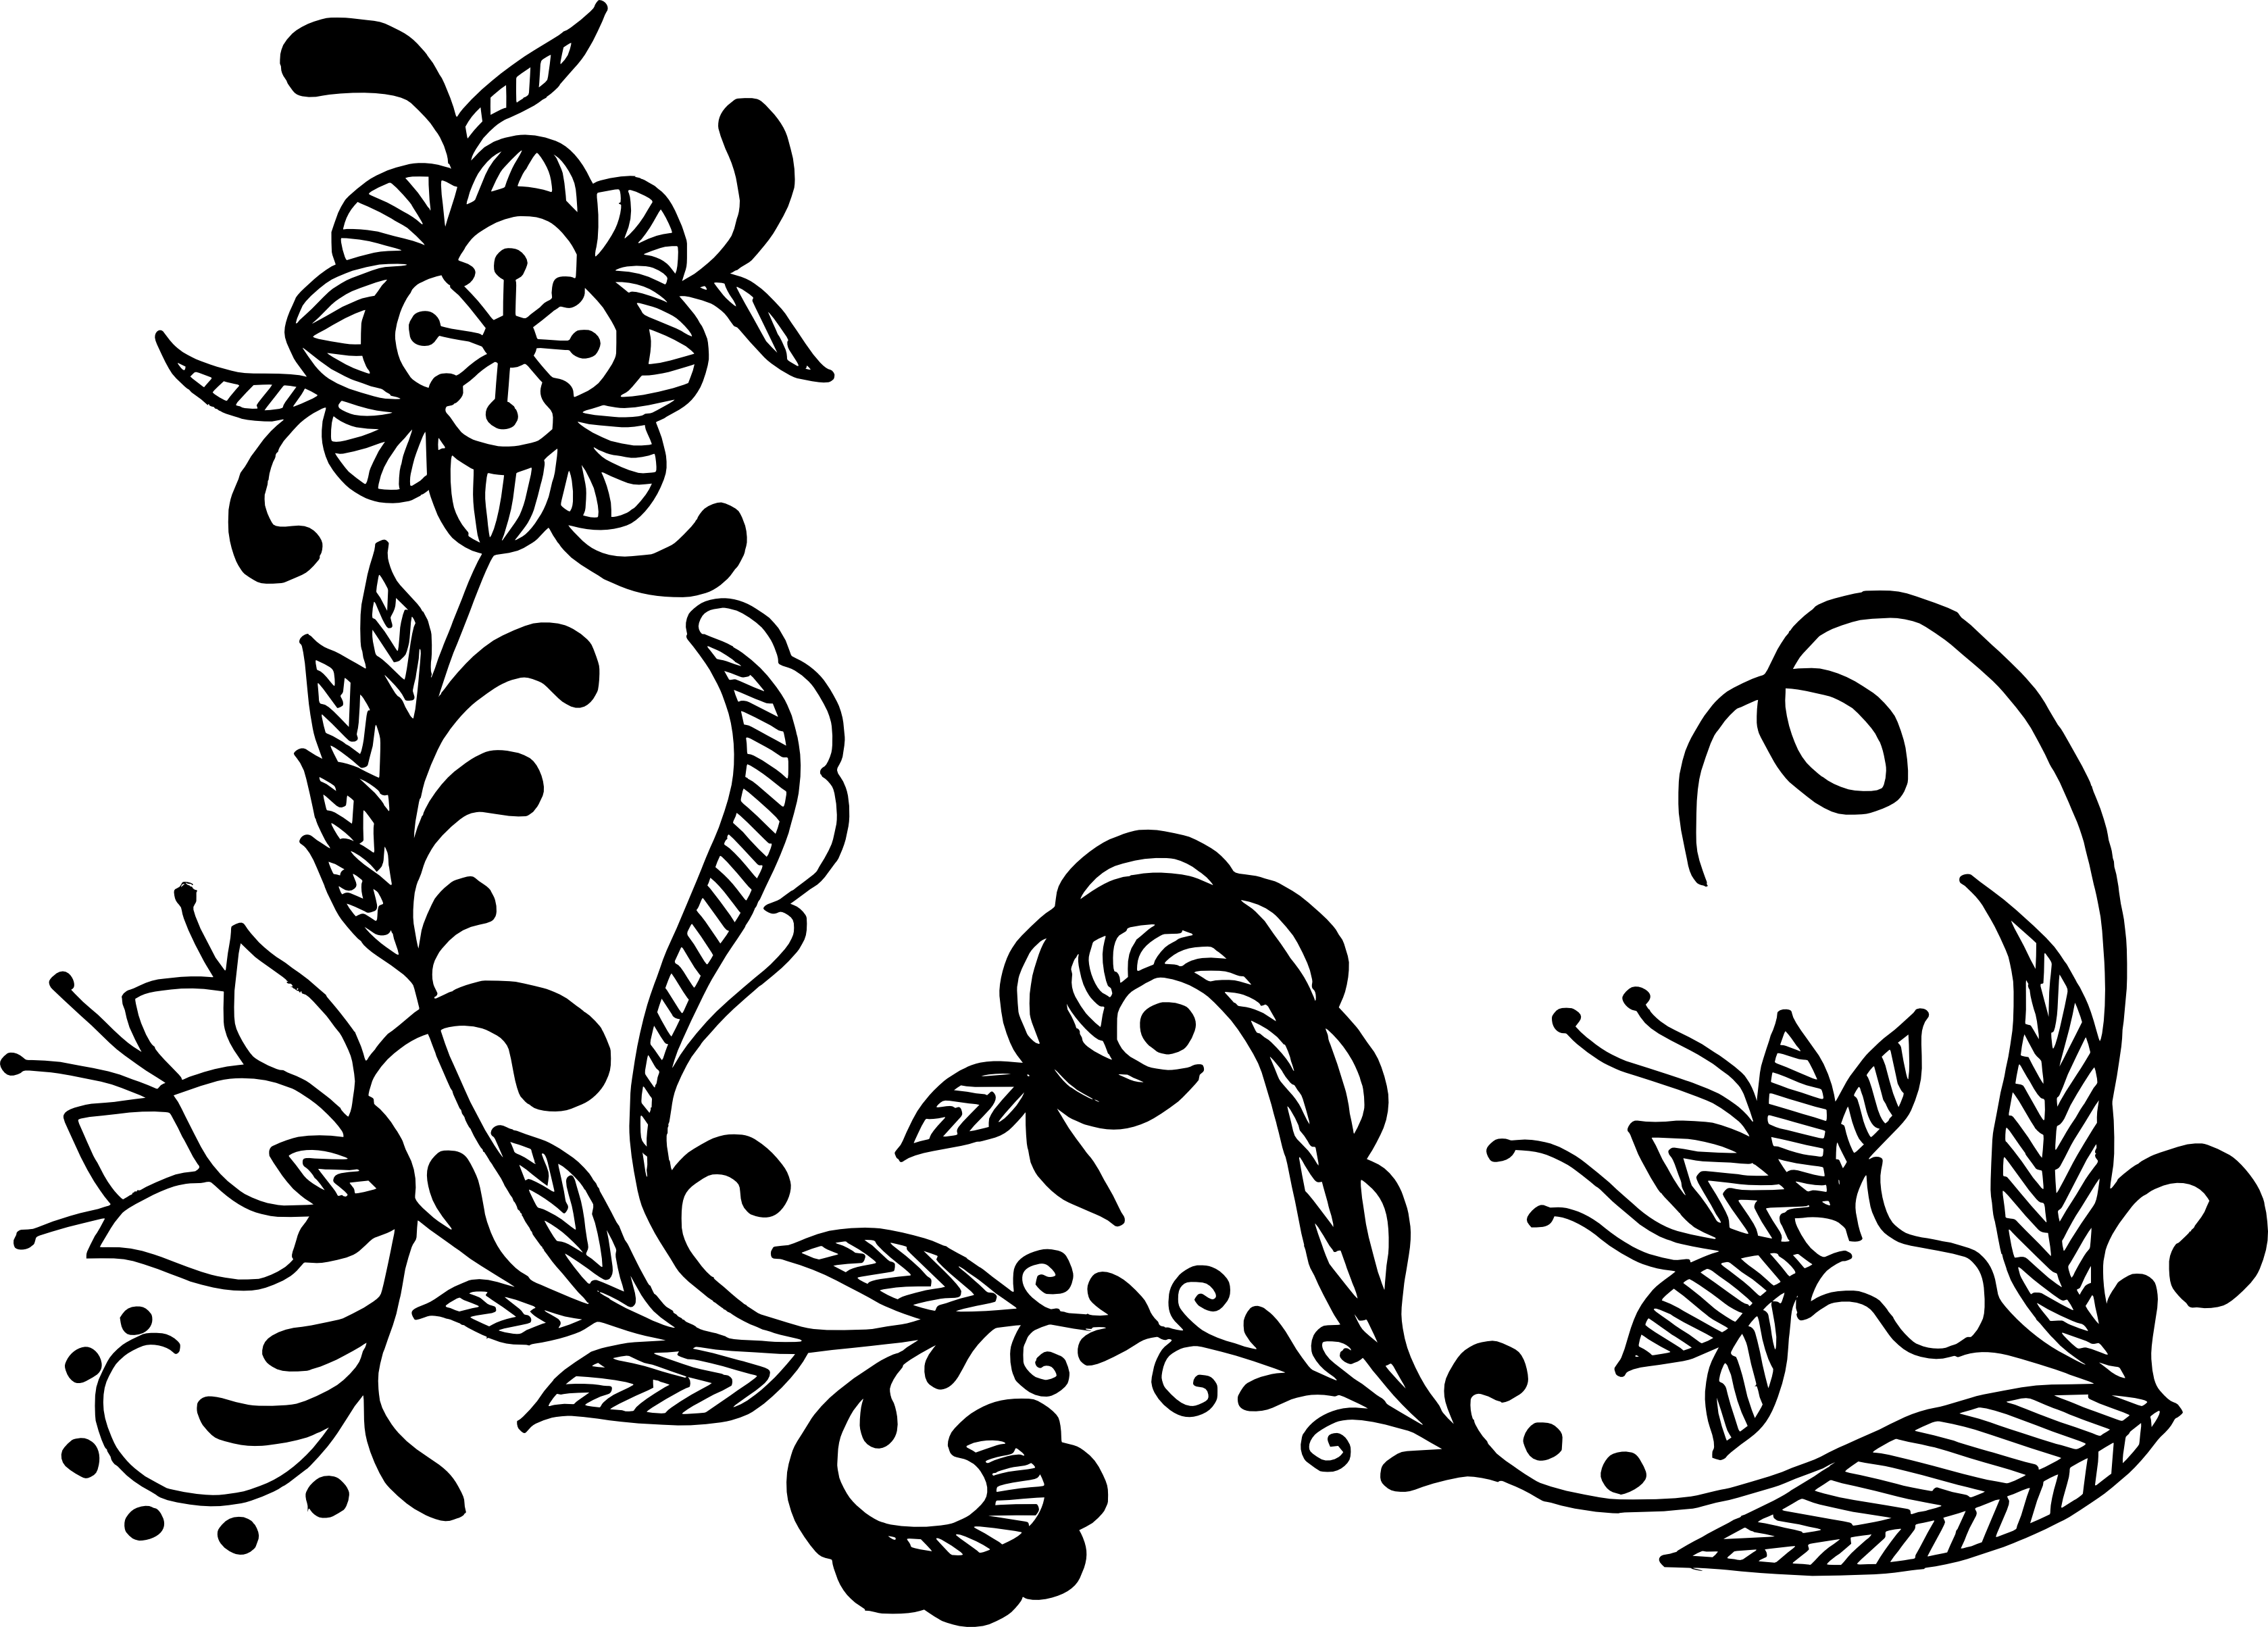 Line Art Flower Png : Flower corner vector png transparent svg vol